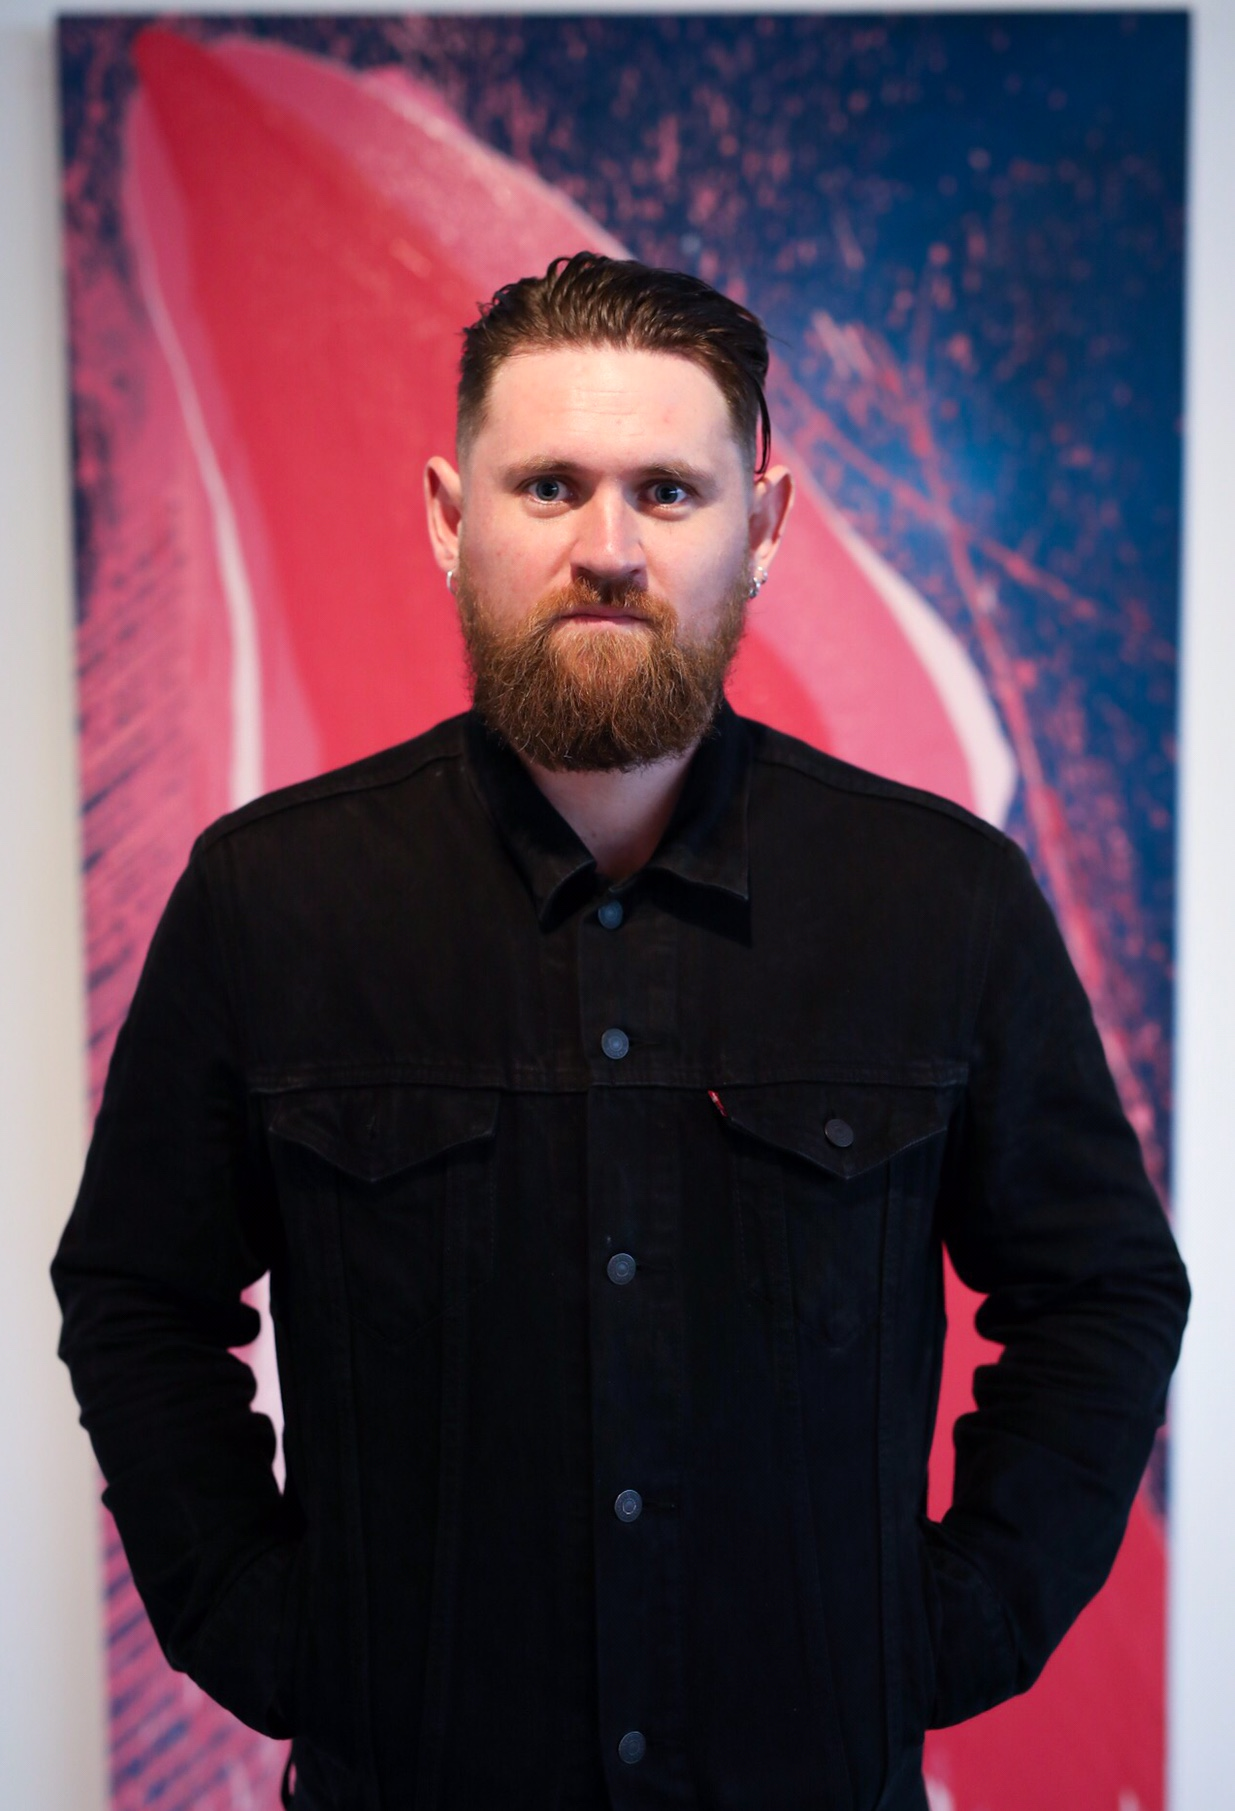 Eoin without hat in front of pink painting